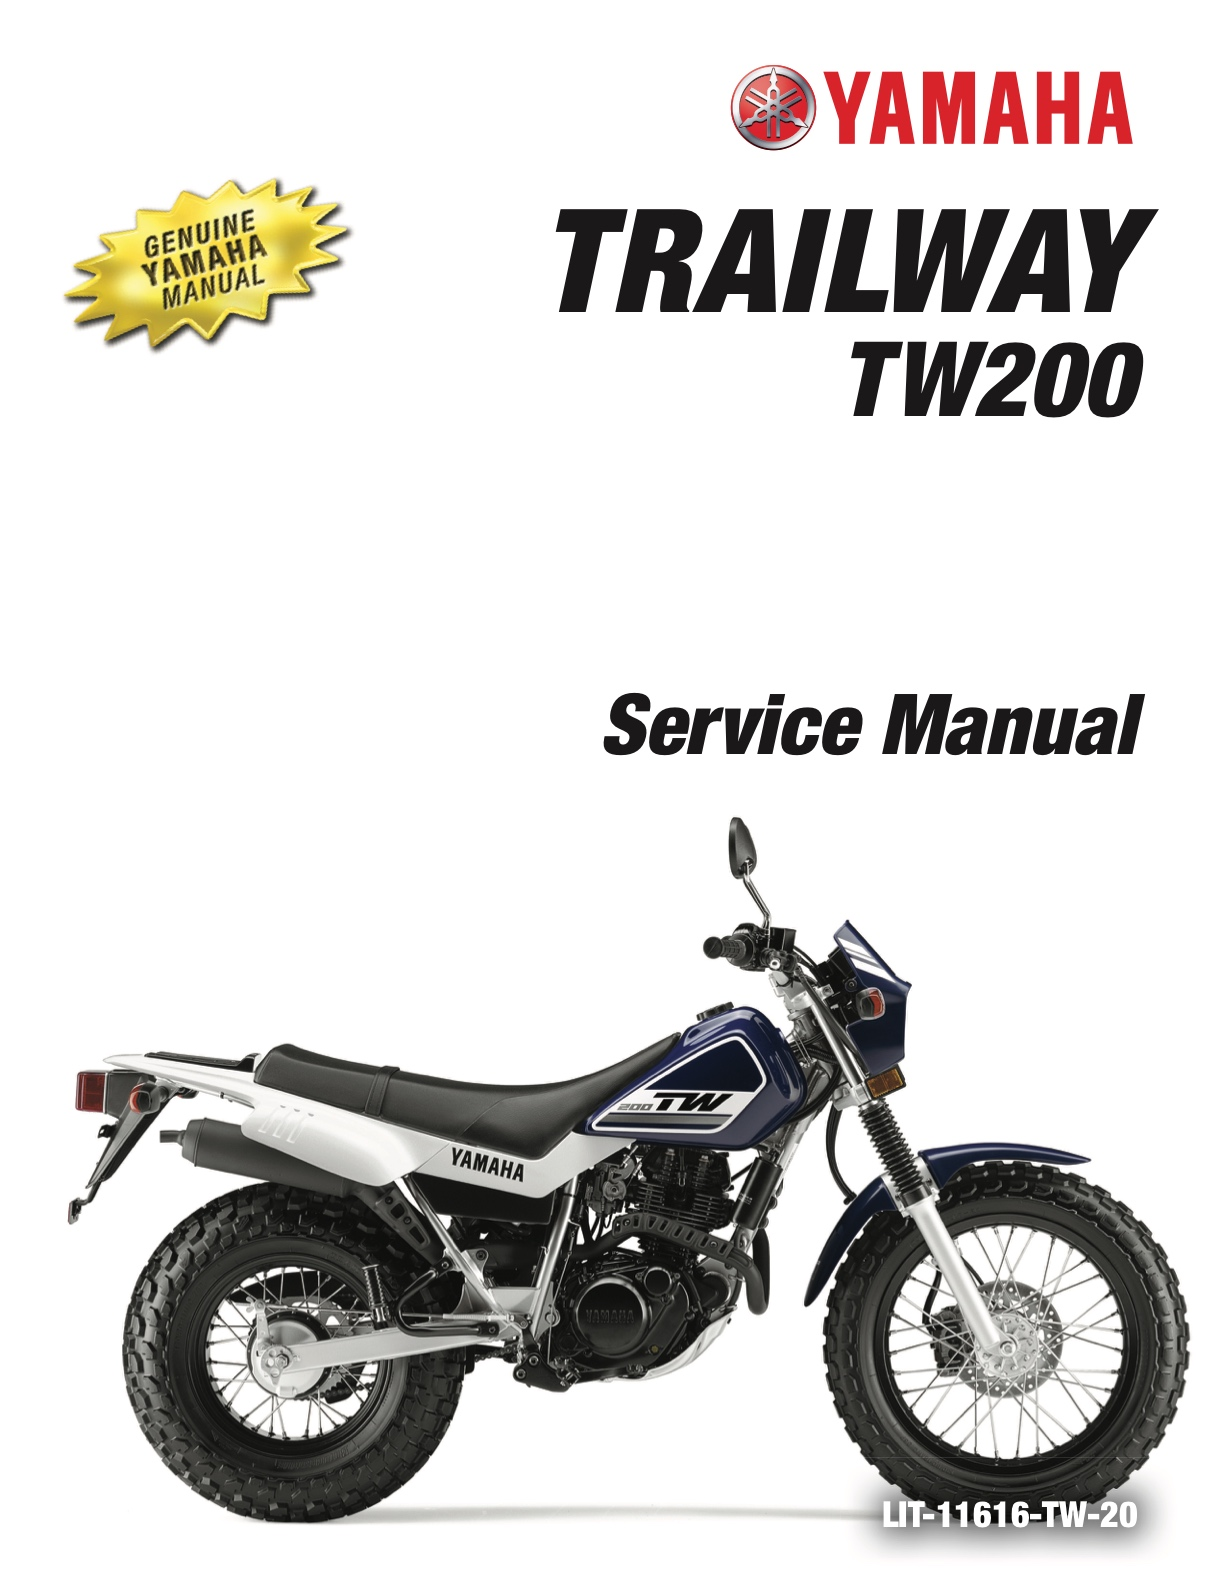 Yamaha Trailway Tw200 Workshop Service Manual